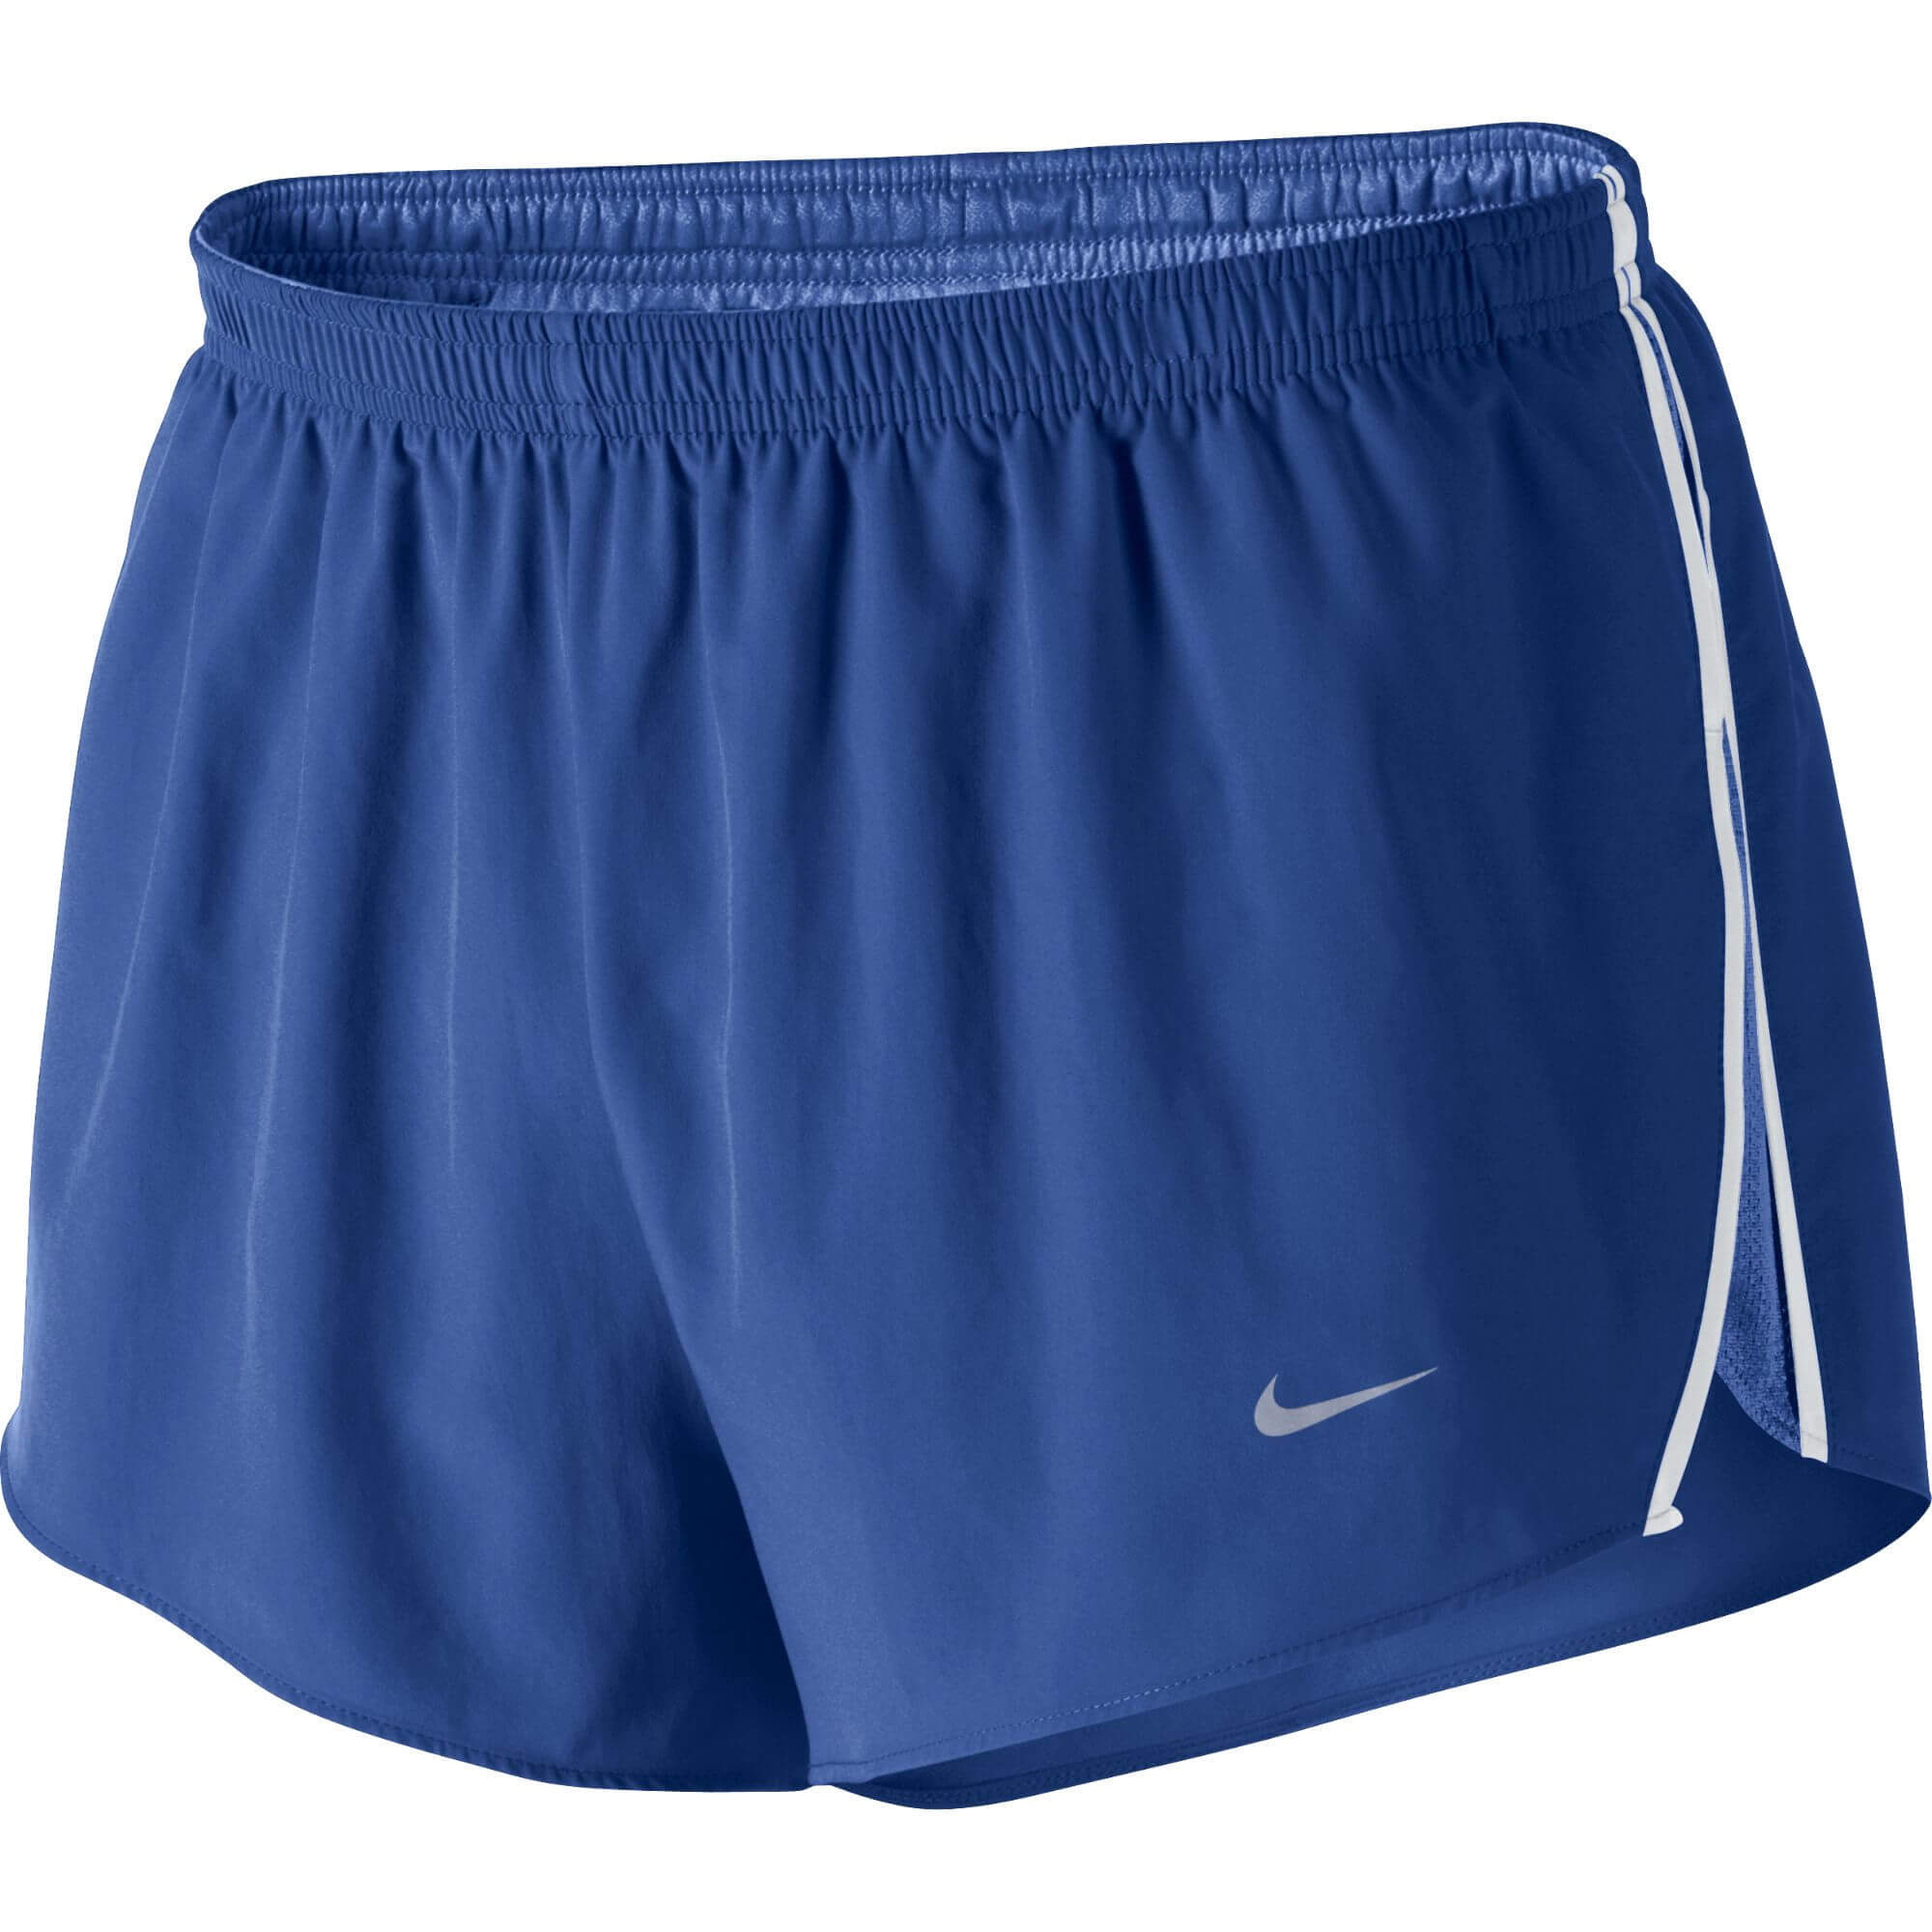 Running shorts are definitely a helpful thing to have if you are an avid jogger or runner. You don't want to run in sweatpants or track pants because those are full-length pants, and they aren't well ventilated either, not to mention that you obviously can't go for a good run in a pair of jeans either.